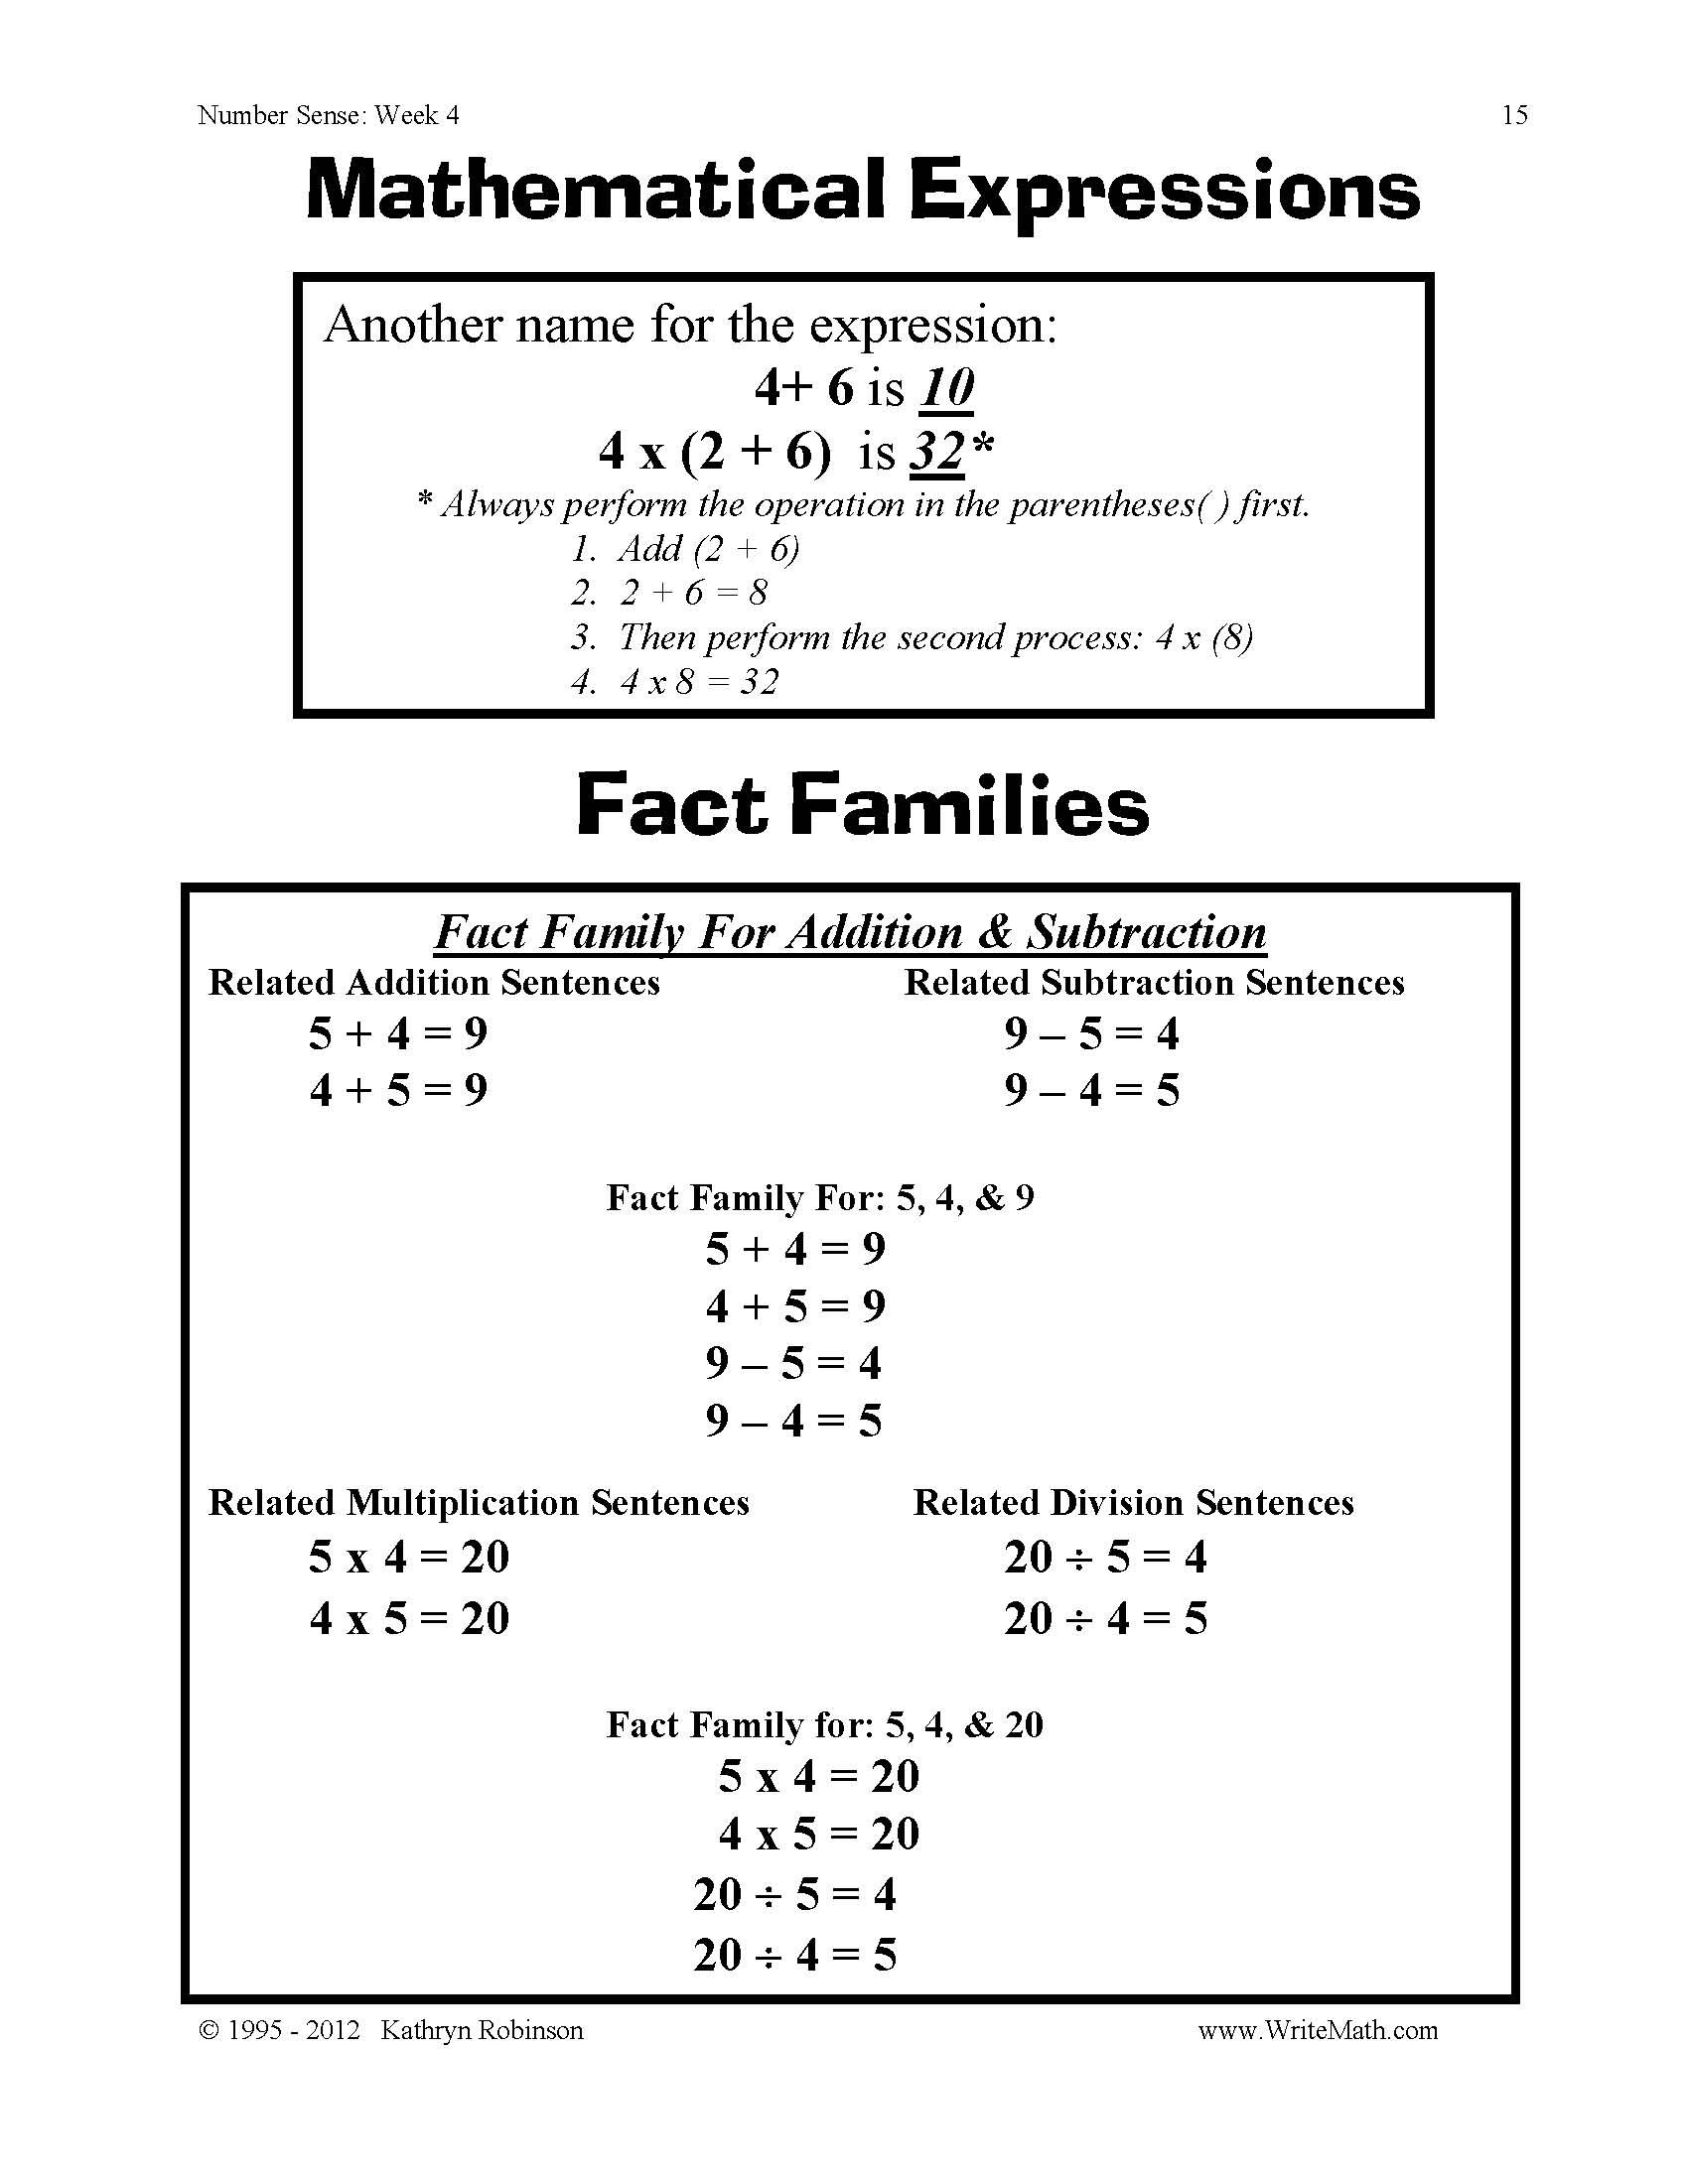 Number Sense Worksheets – Number Sense Worksheets